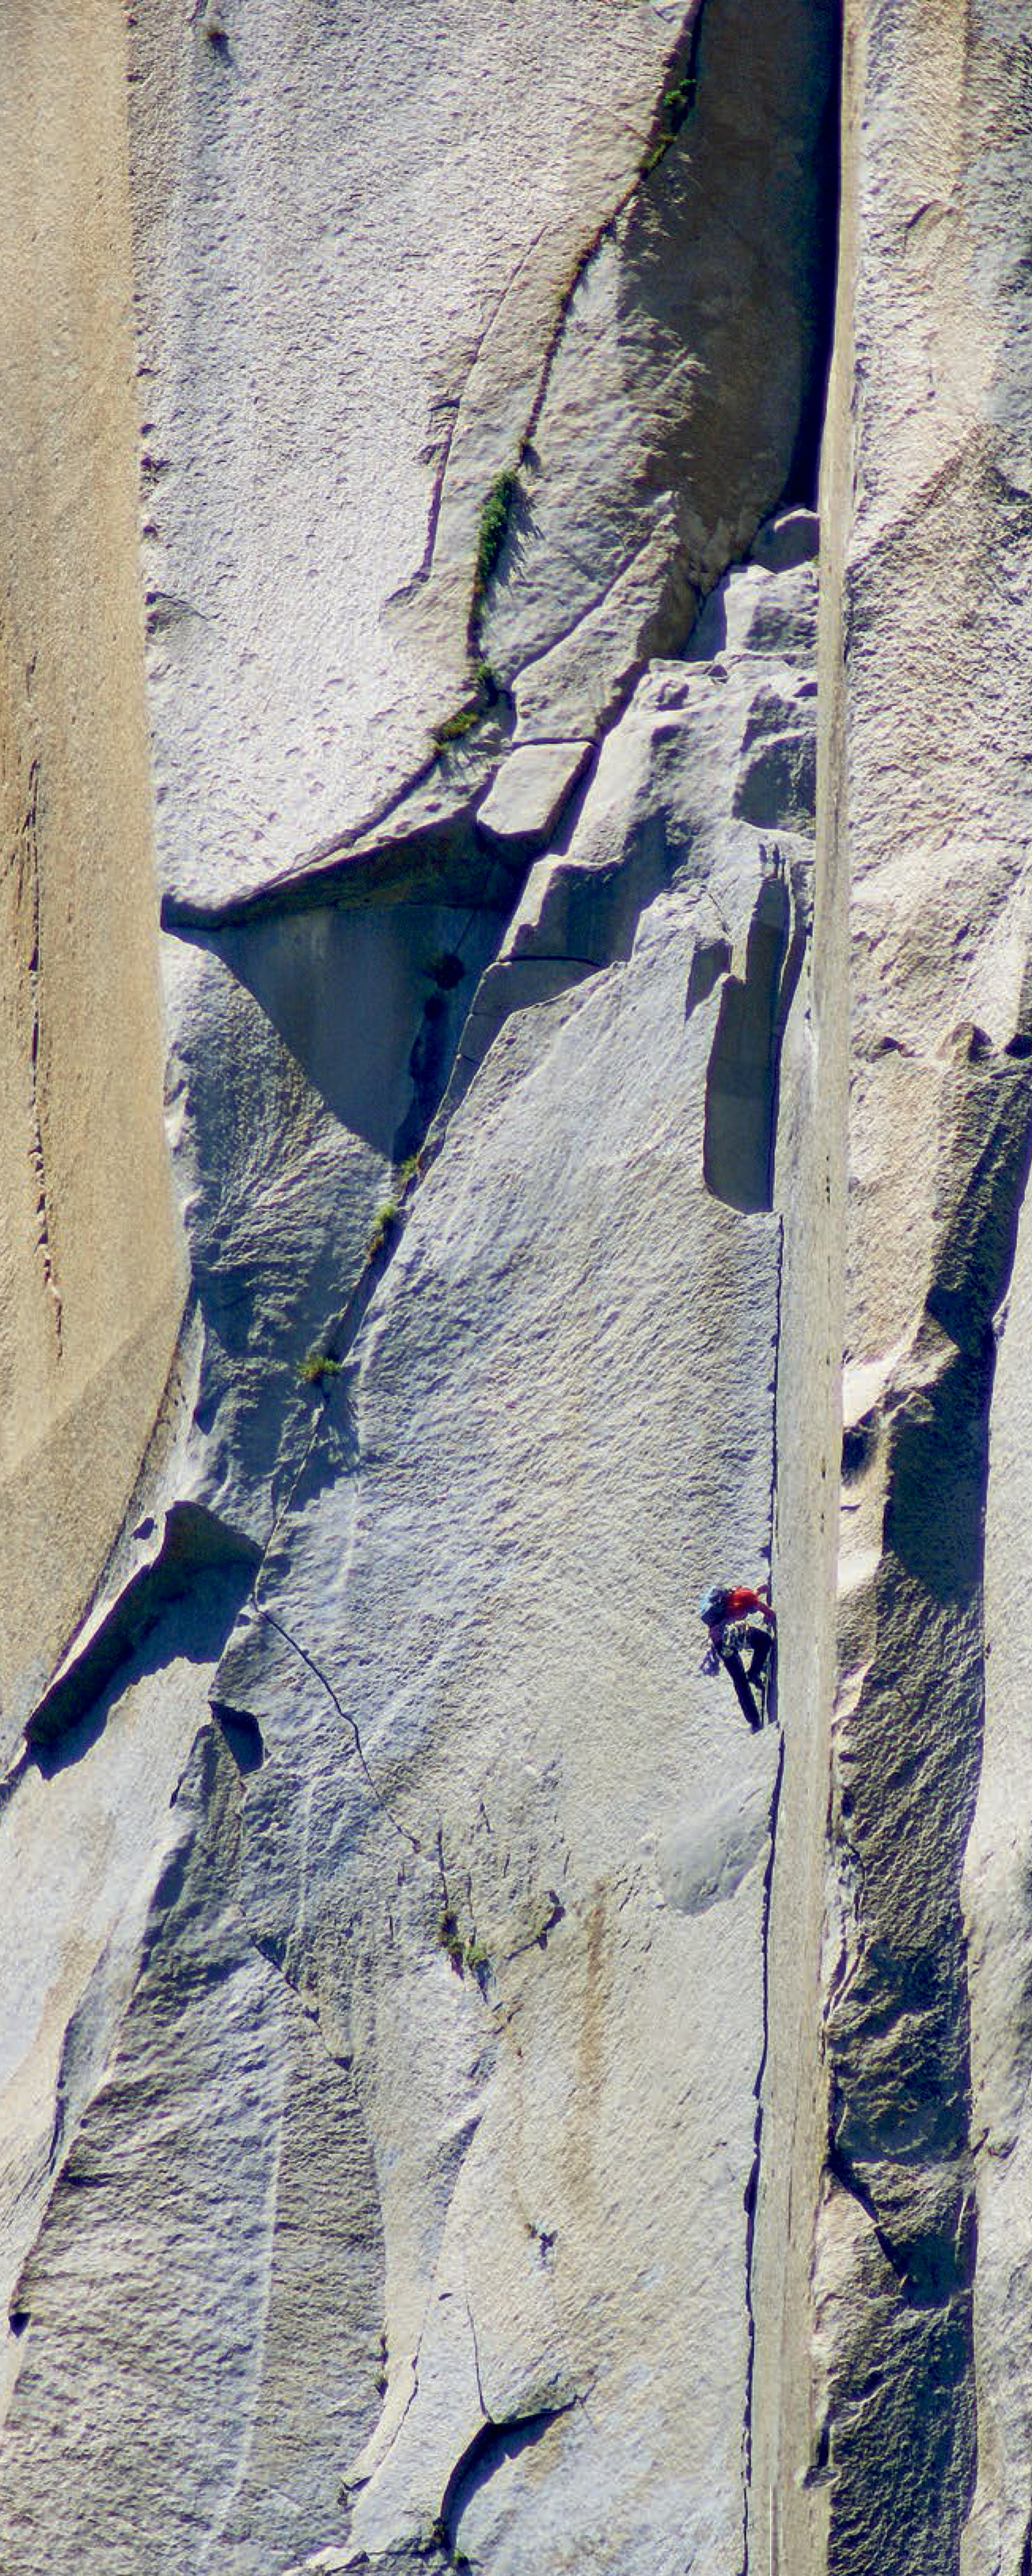 Honnold on The Nose. Both climbers and mainstream journalists were speculating whether Honnold or Dean Potter would free solo El Capitan first. Potter told Outside, The magazines want a race, but this would go beyond athletic achievement. Soloing, he insists, is spiritual. Honnold completed a ropeless ascent of Freerider (5.13a, 3,000') on June 3, 2017. [Photo] Tom Evans